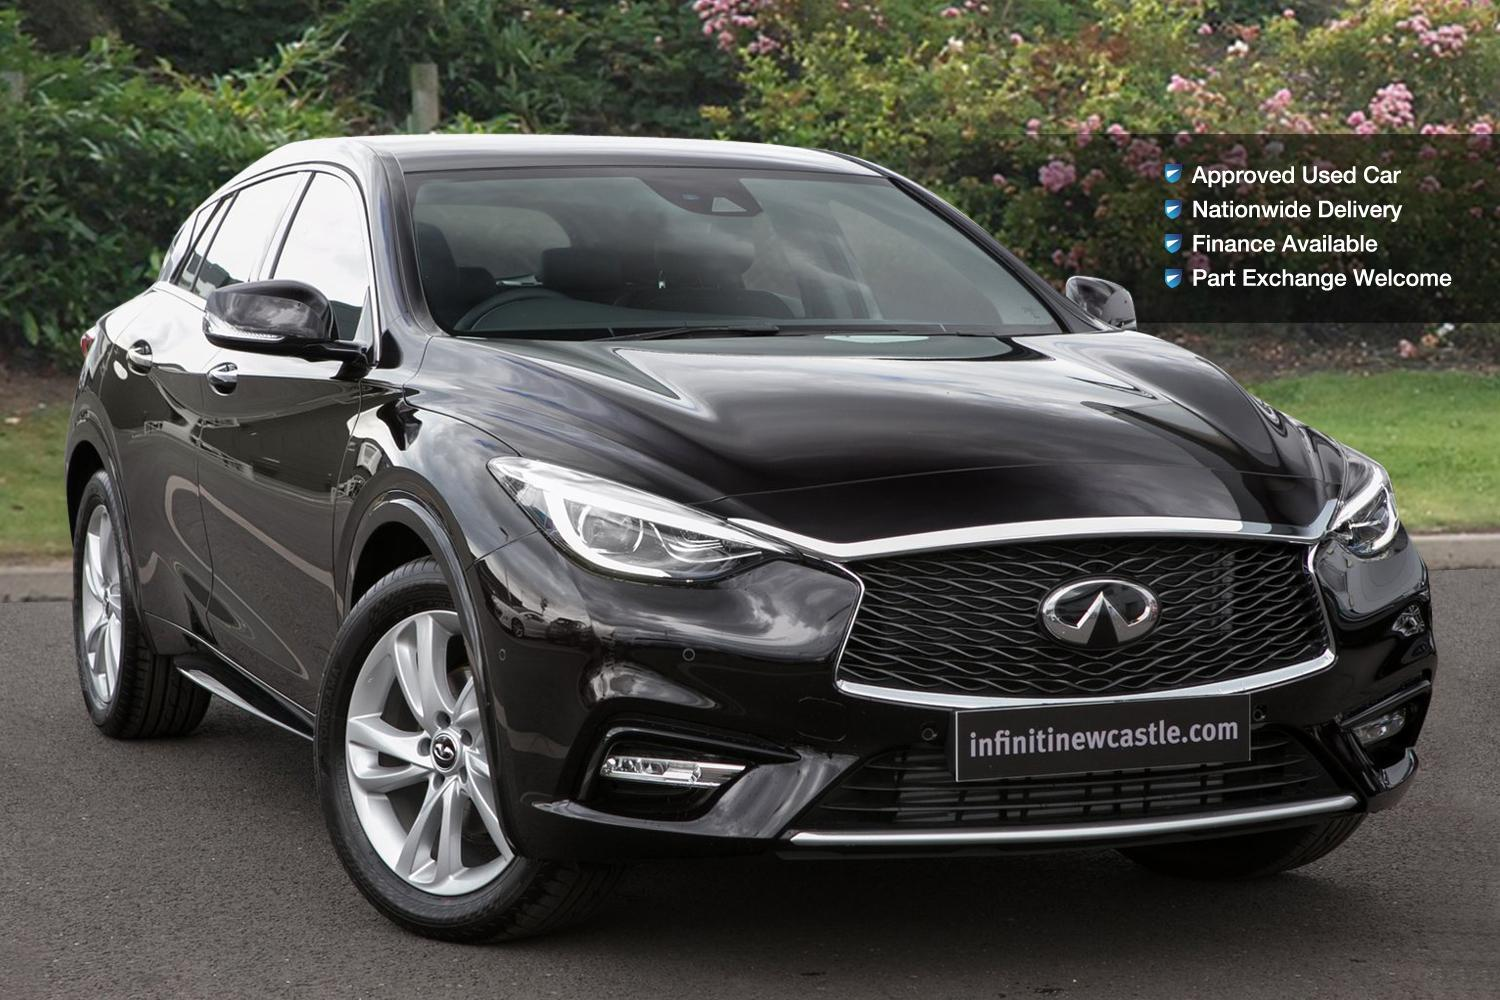 used infiniti q30 1 5d premium tech 5dr diesel hatchback. Black Bedroom Furniture Sets. Home Design Ideas